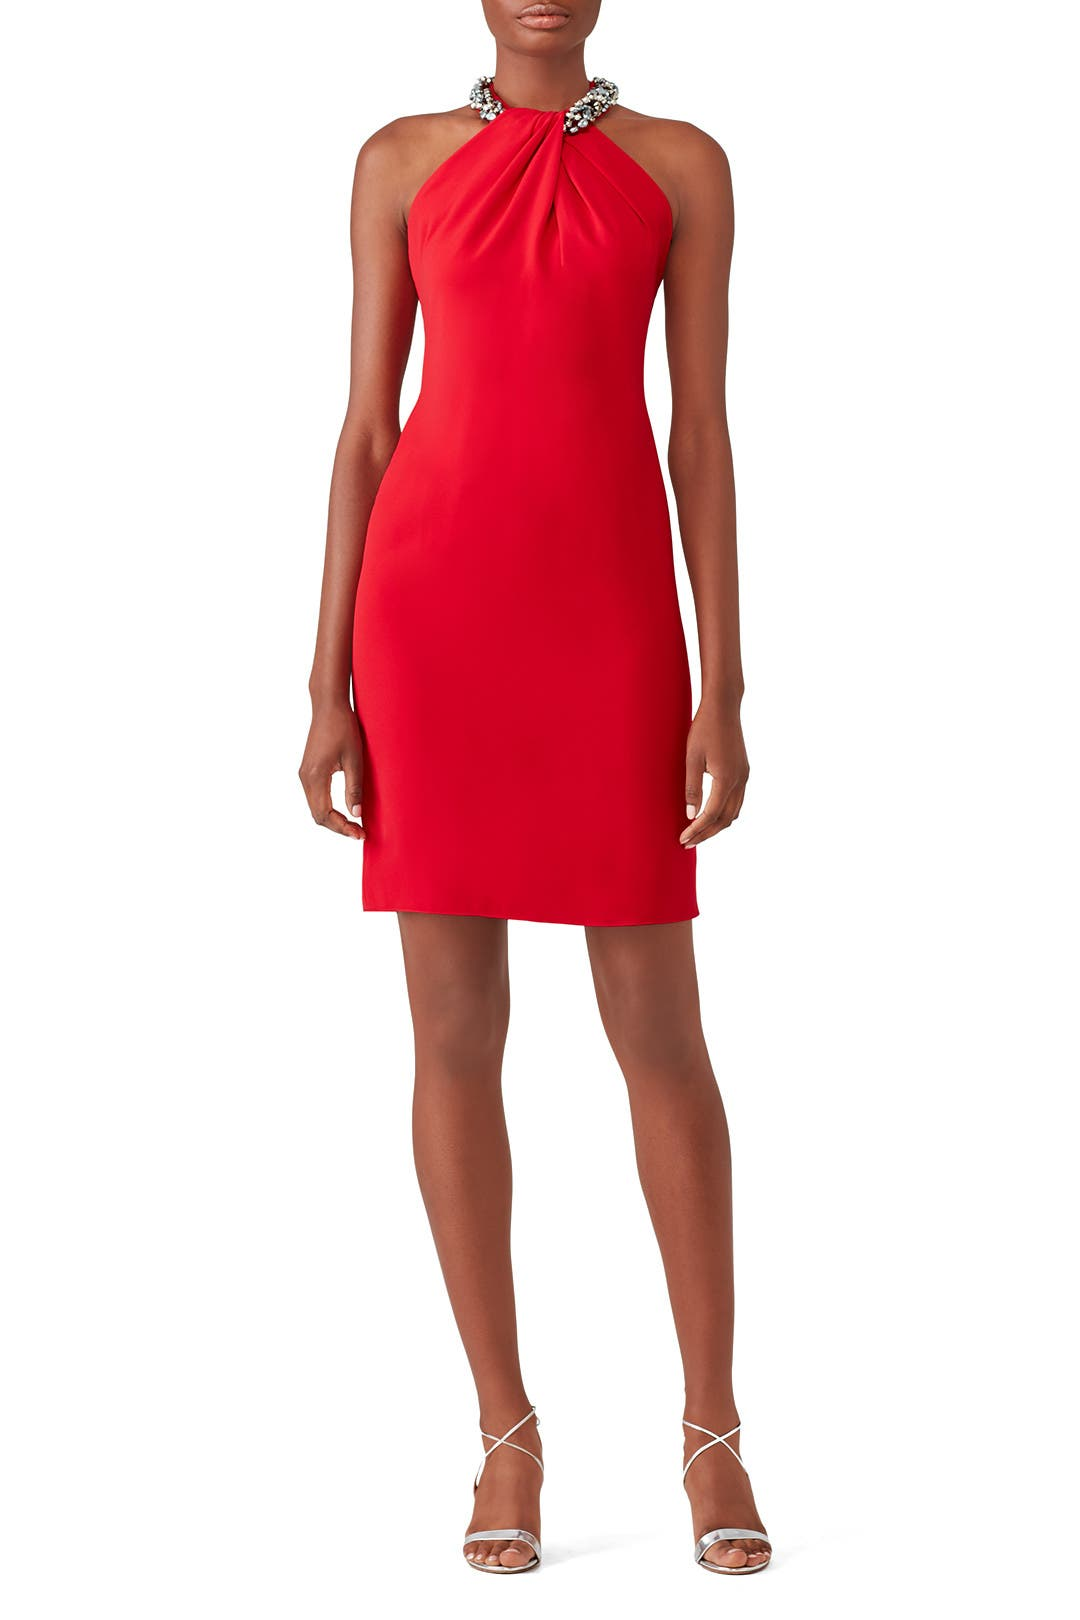 Dresses - Carmen Marc Valvo Great selection and prices for Wedding ...